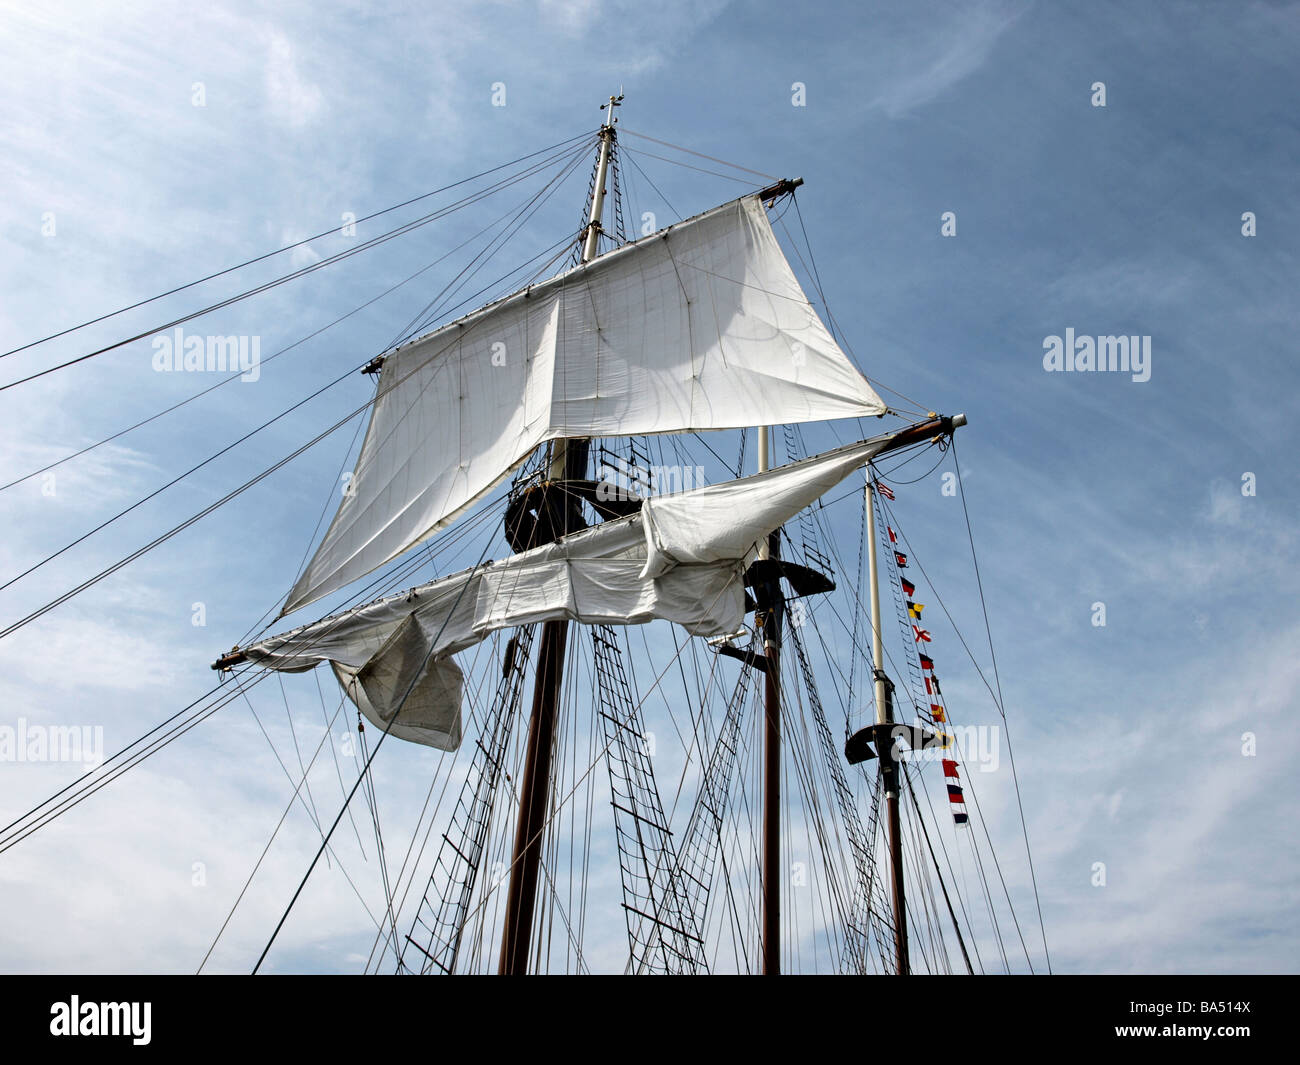 Ship Ladders Stock Photos  for Rope Ladder Ship  75sfw